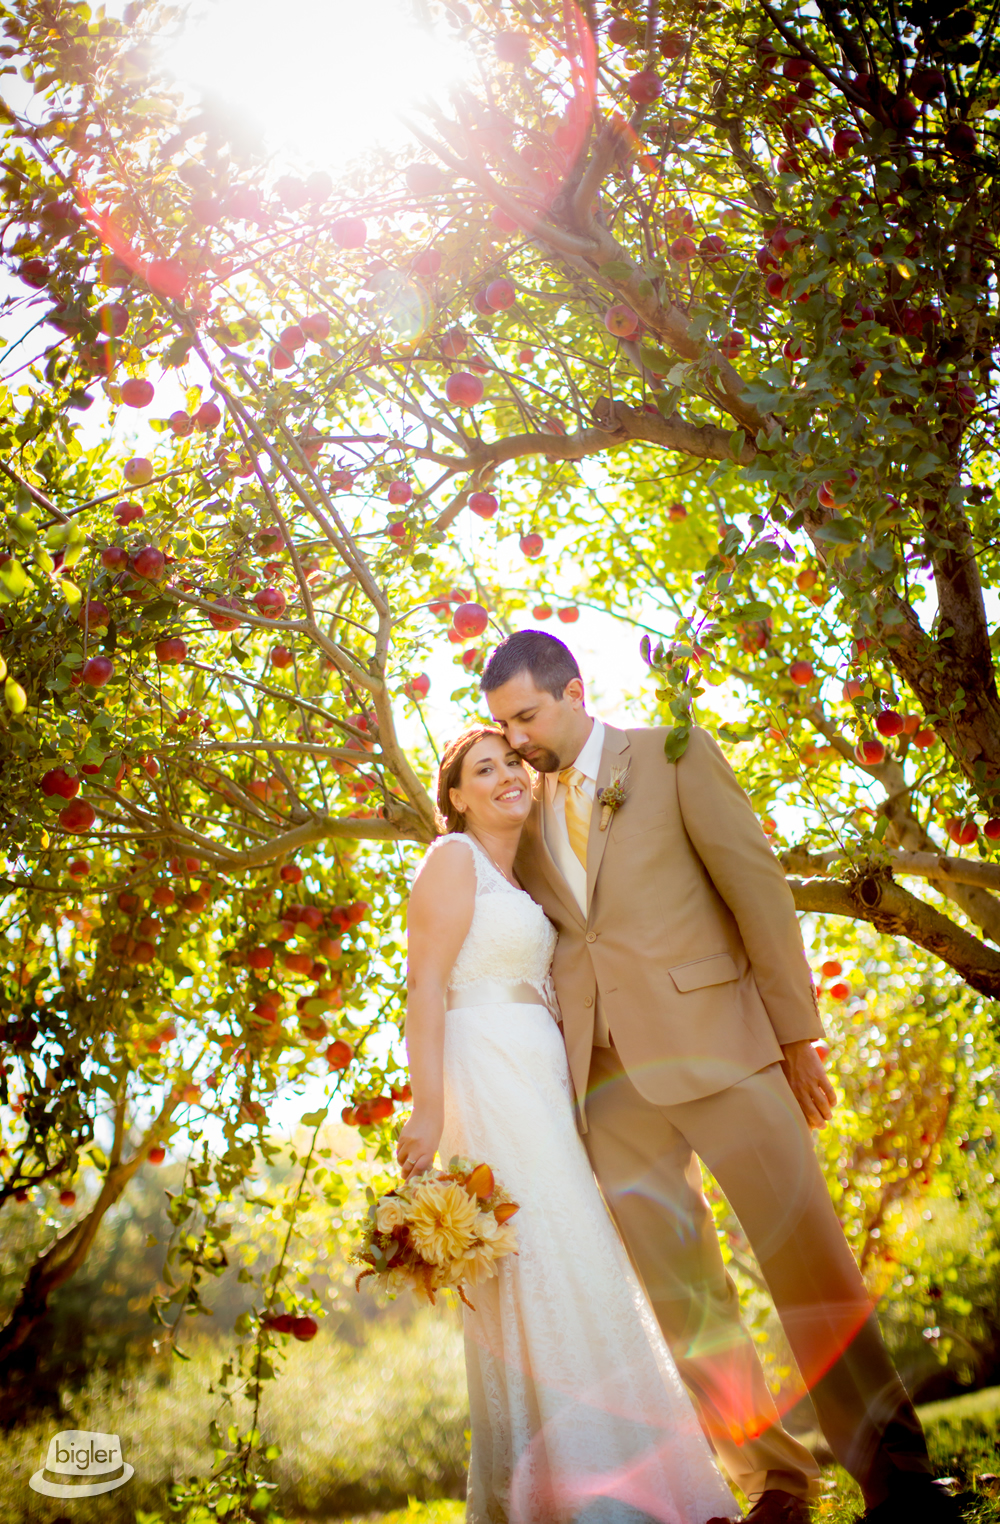 Kevin_and_Sally_Wedding_-_18